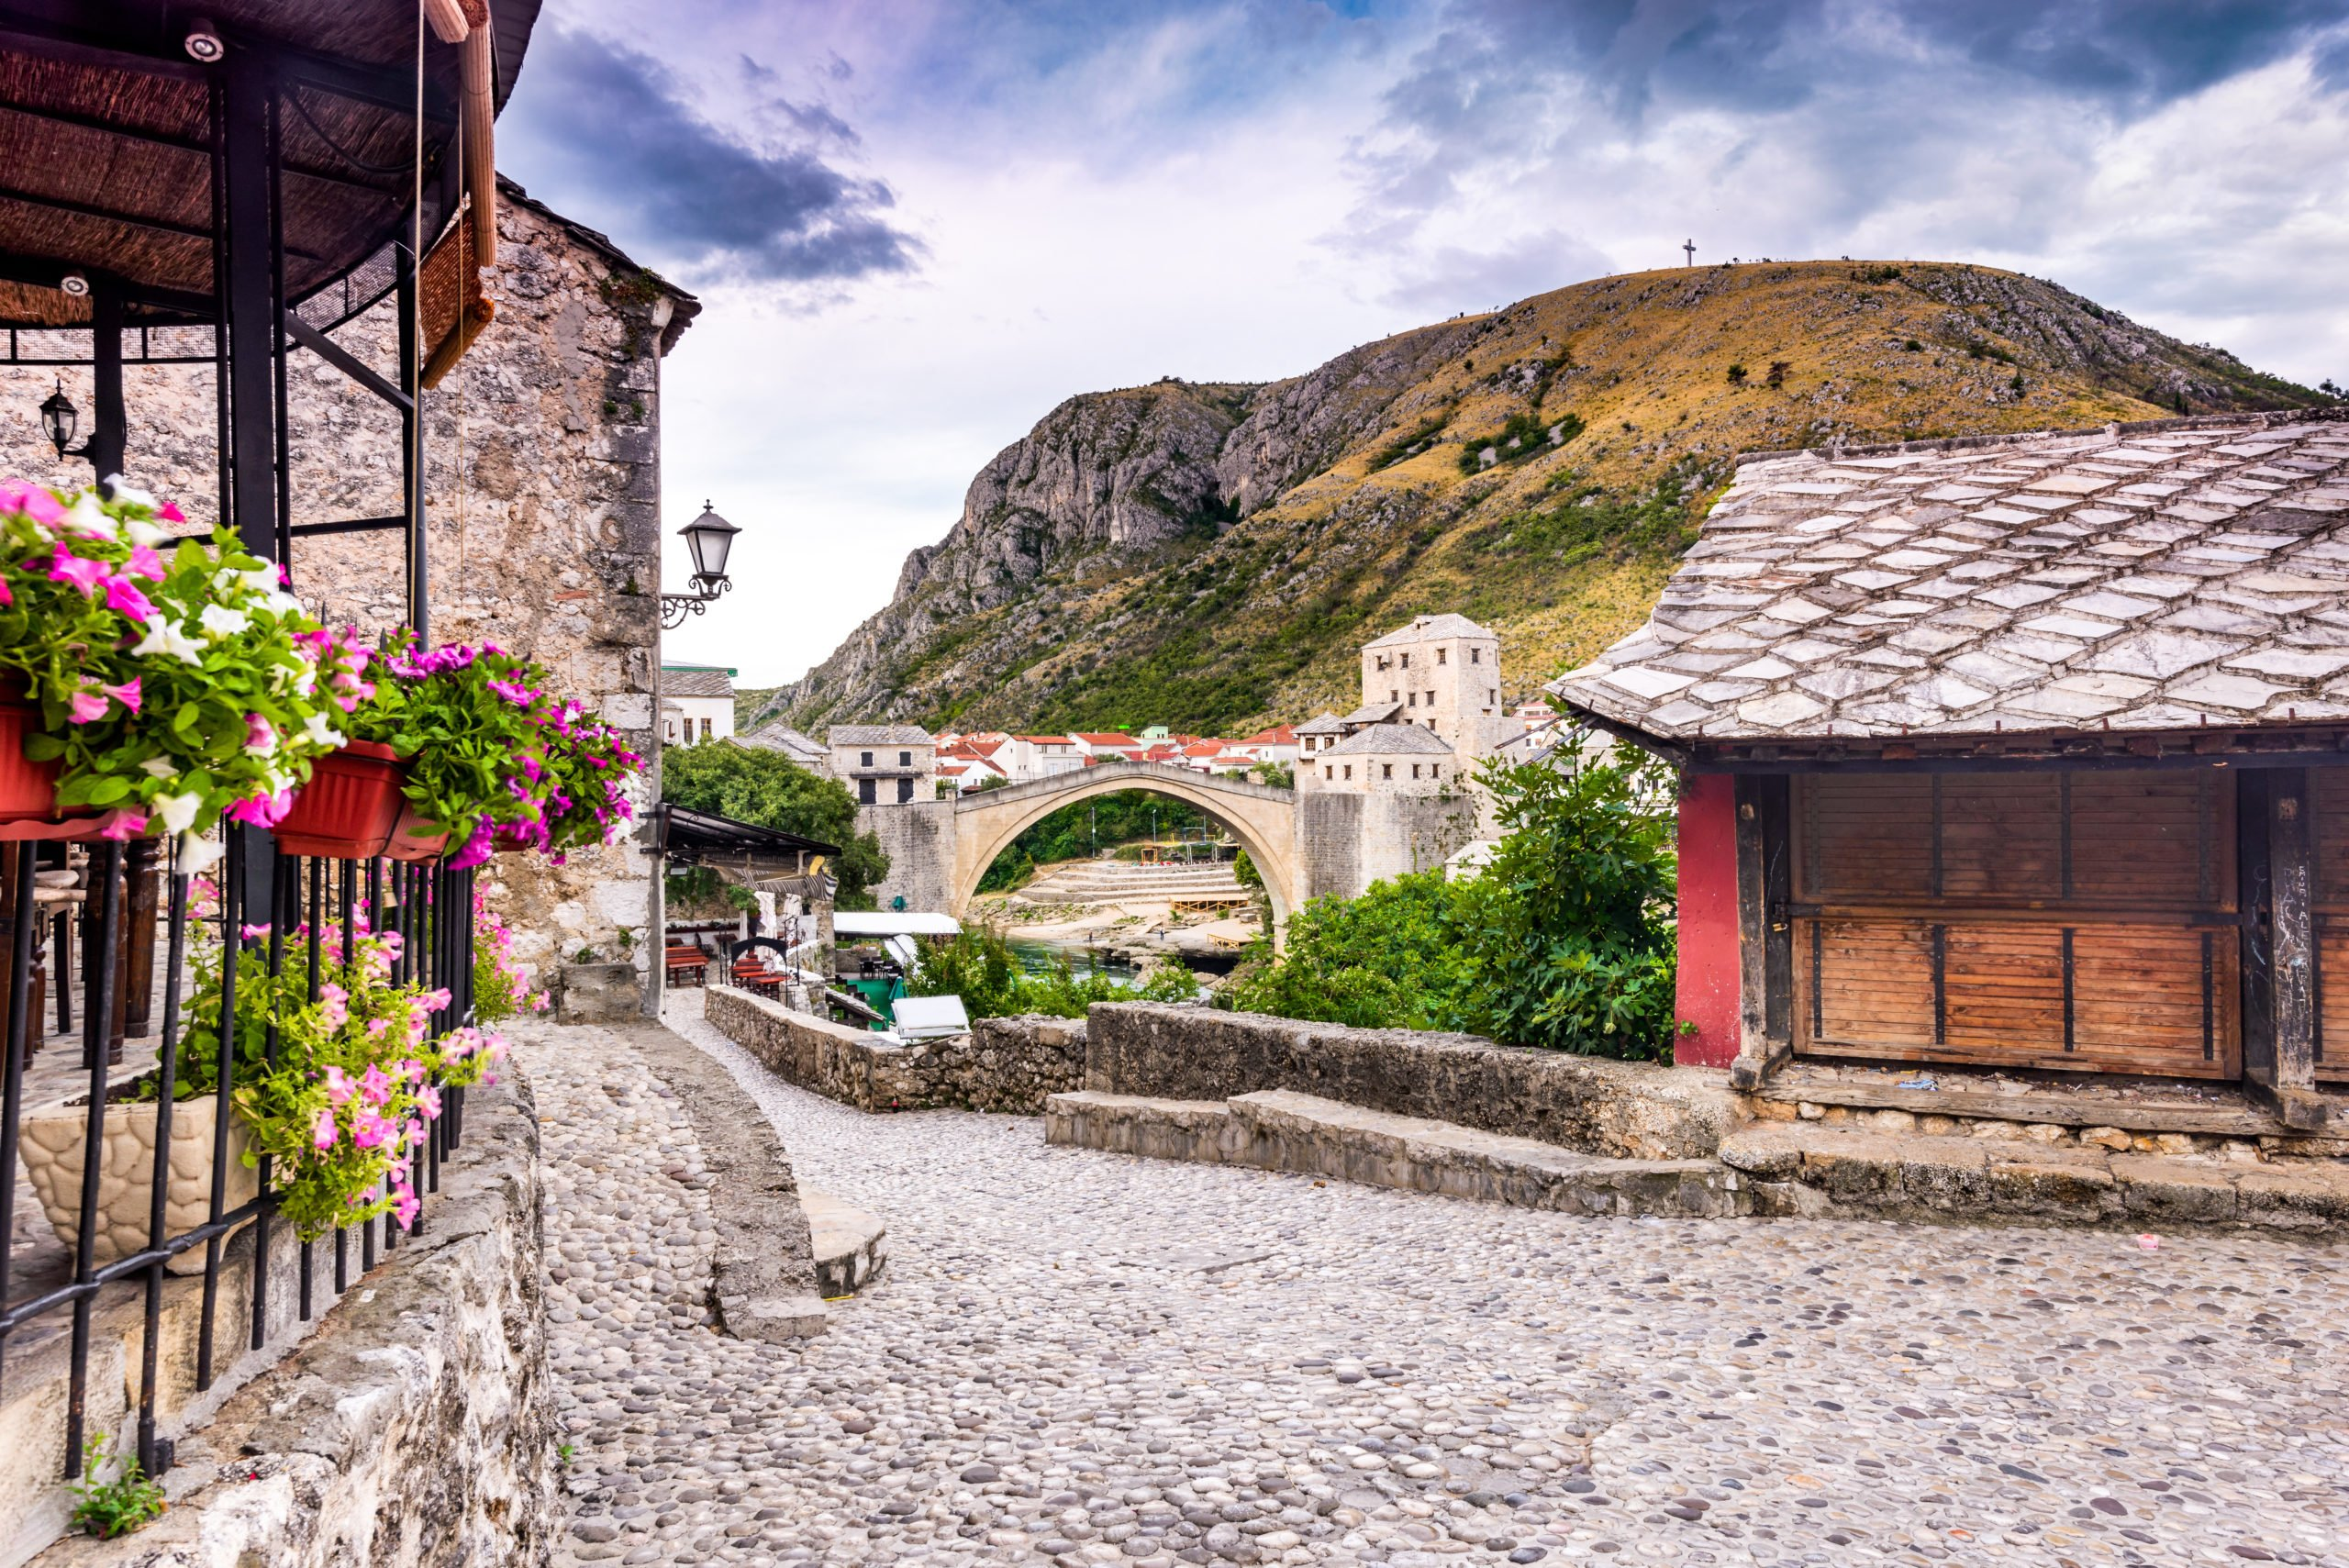 Admire The Famous Mostar Bridge During The Mostar And Kravice Tour From Dubrovnik